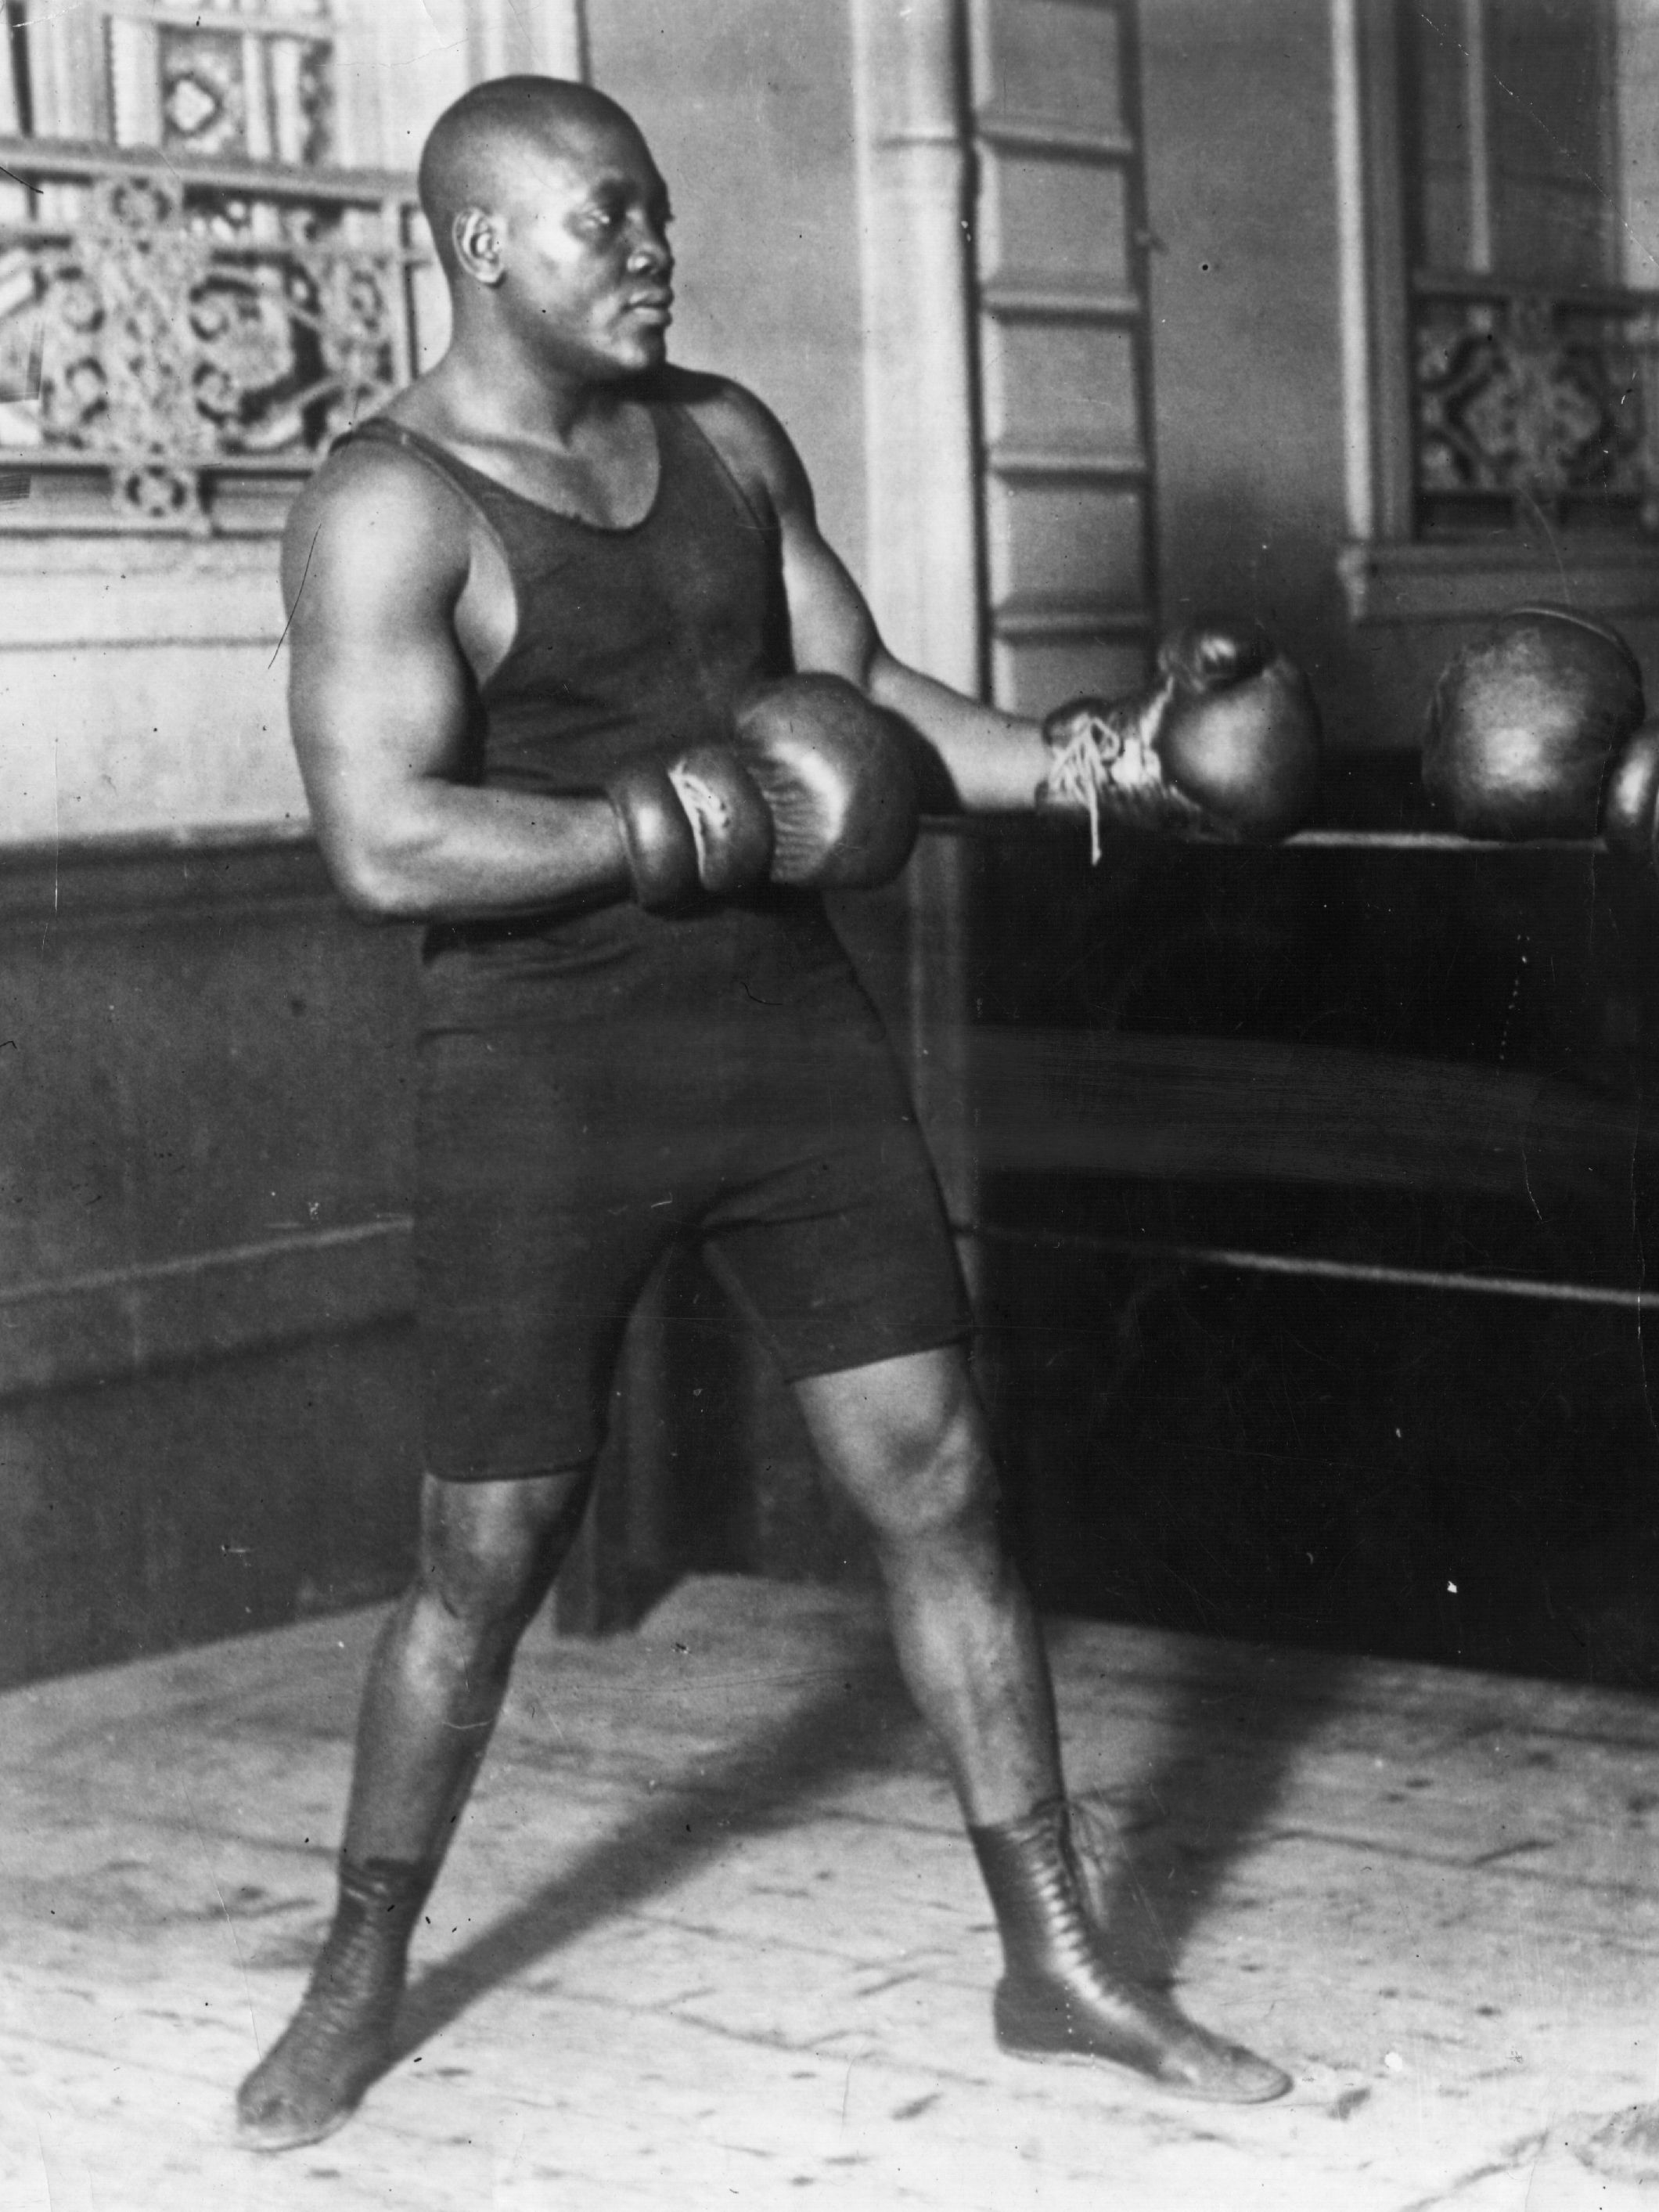 American heavyweight boxer Jack Johnson in action sparring.